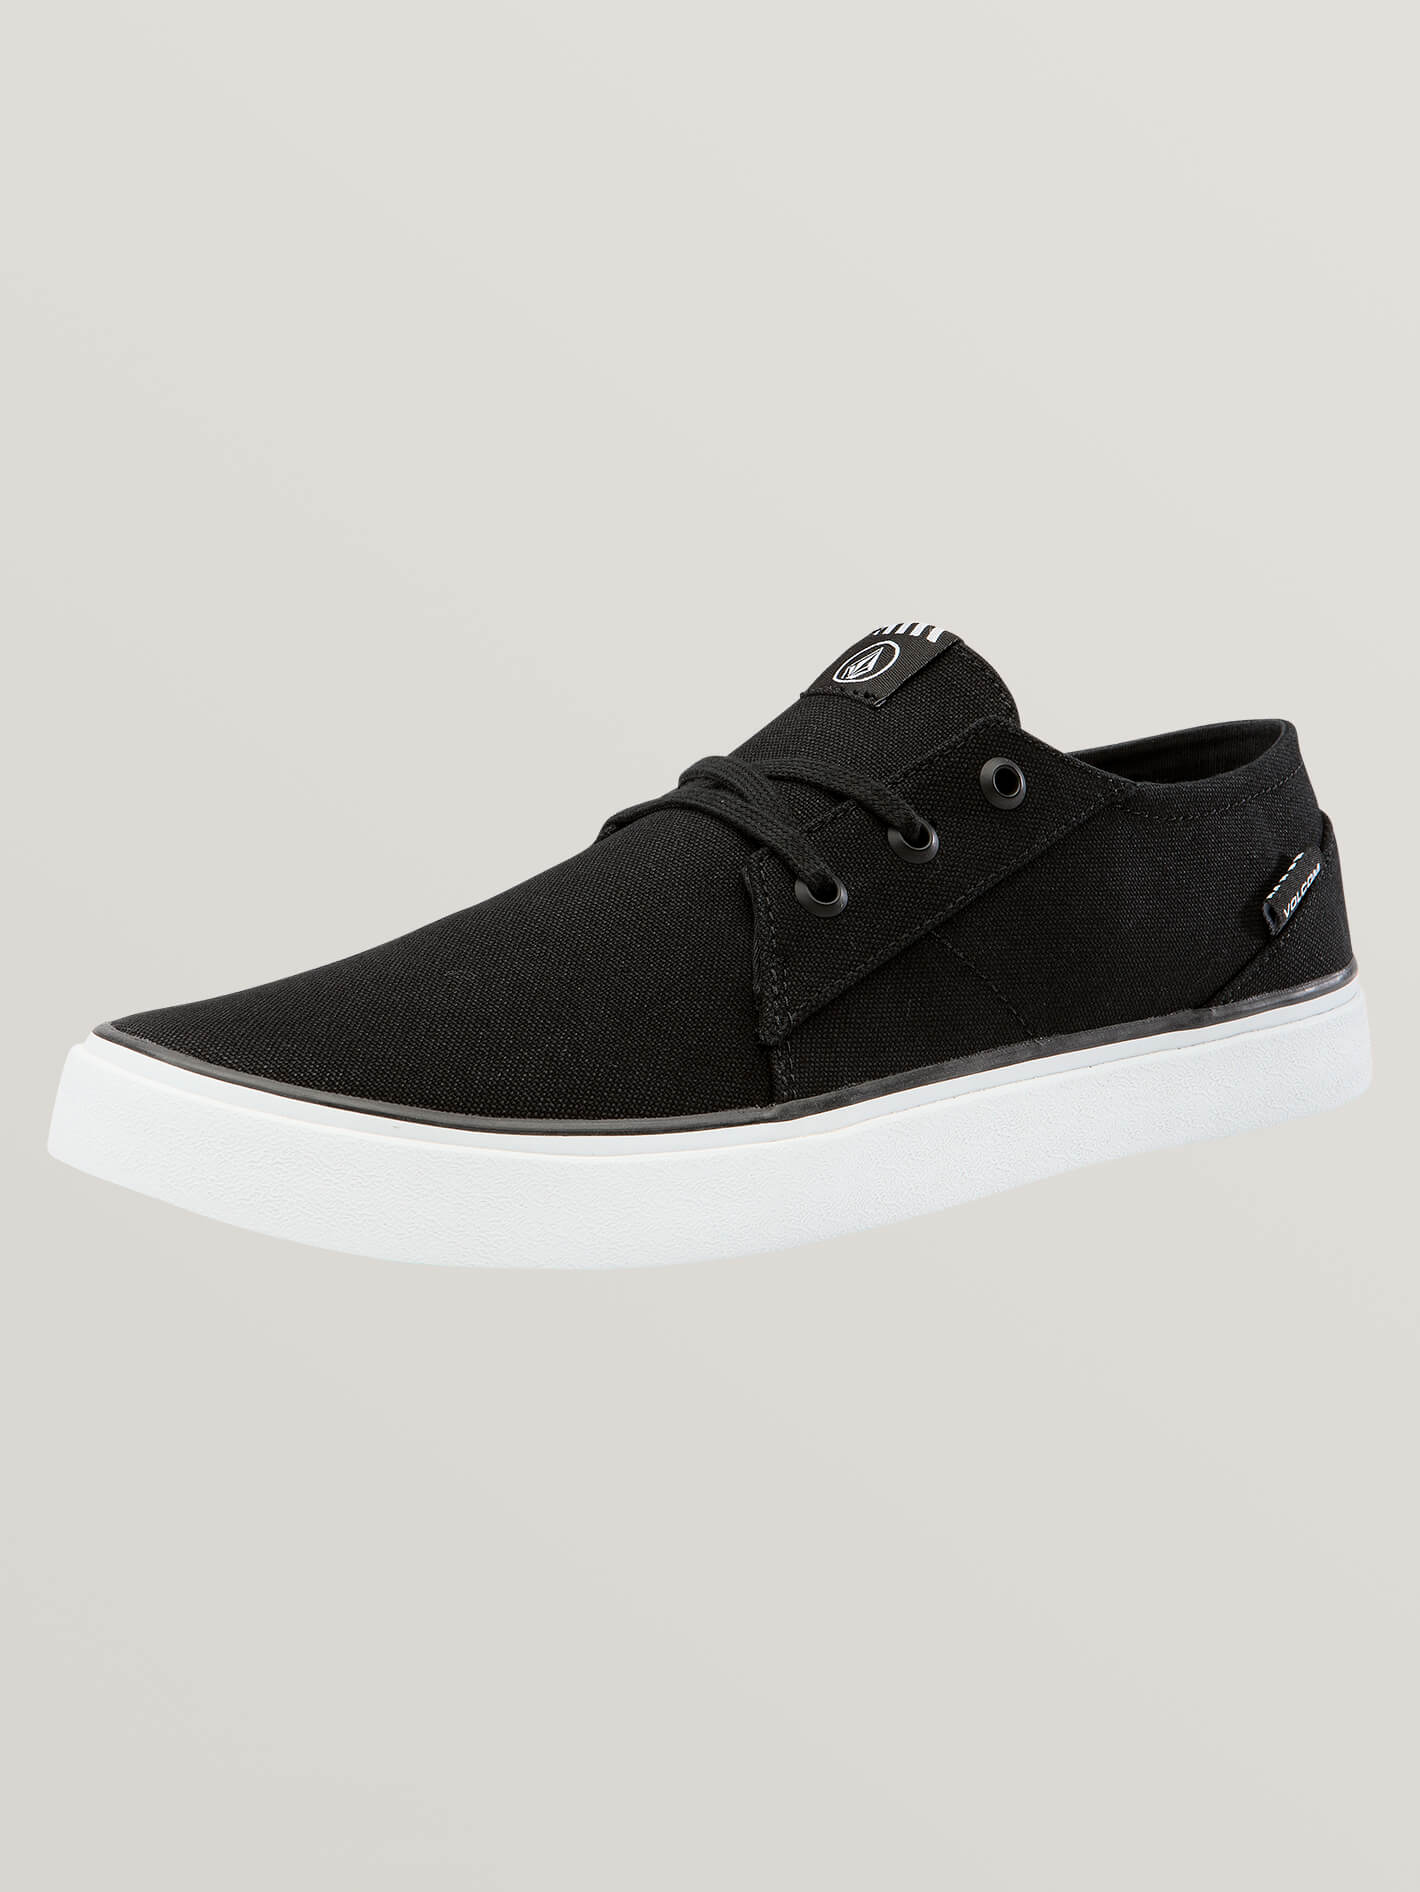 a402ee9c Men's Lace Up Shoes, Sneakers & Casual Footwear | Volcom